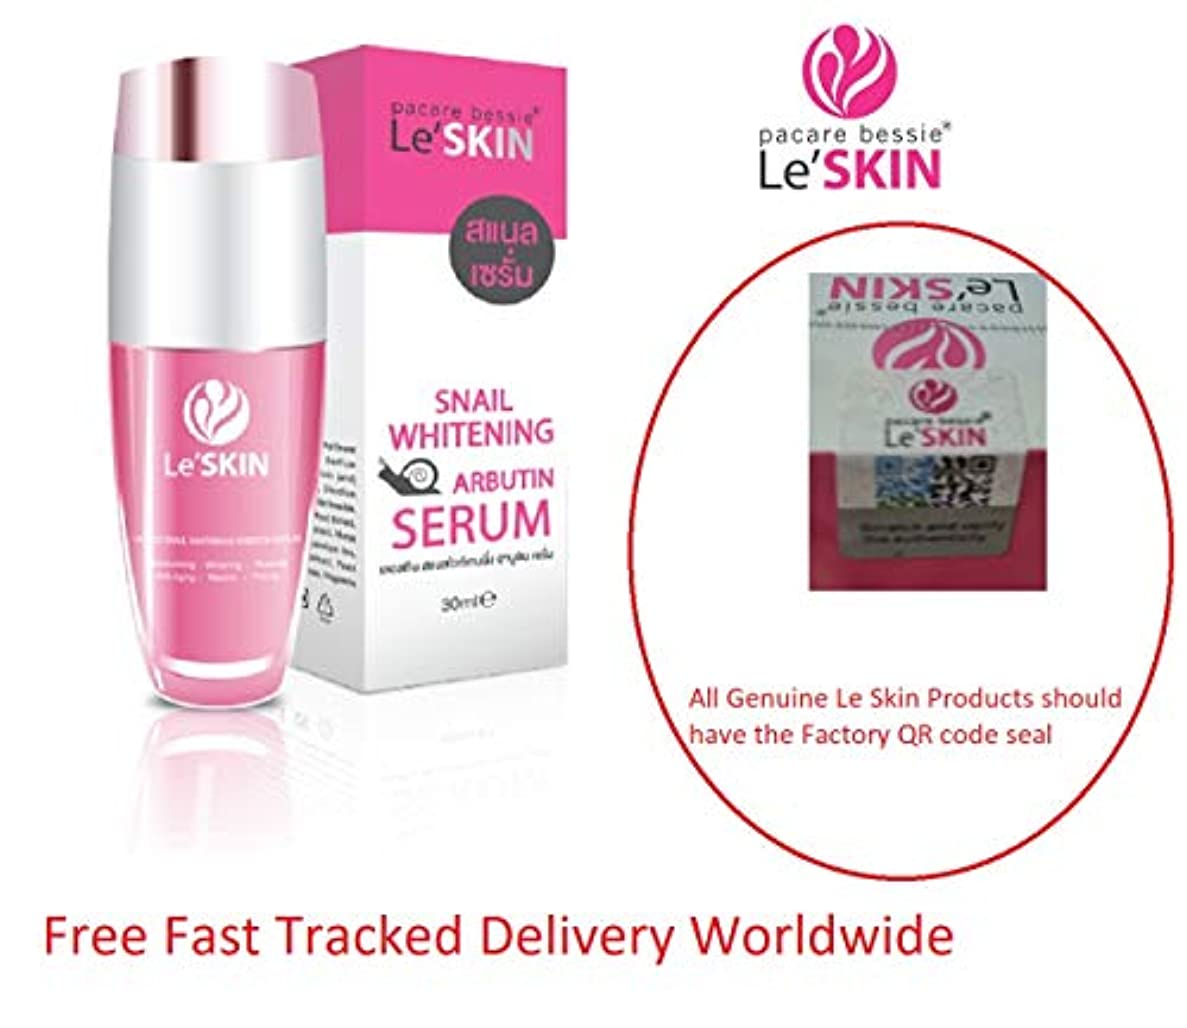 ミスペンドレオナルドダ哀れなLe' SKIN SNAIL WHITENING ARBUTIN SERUM 30ml Reduce Black Spots Radiant Skin ** FREE TRACKED WORLWIDE DELIVERY...